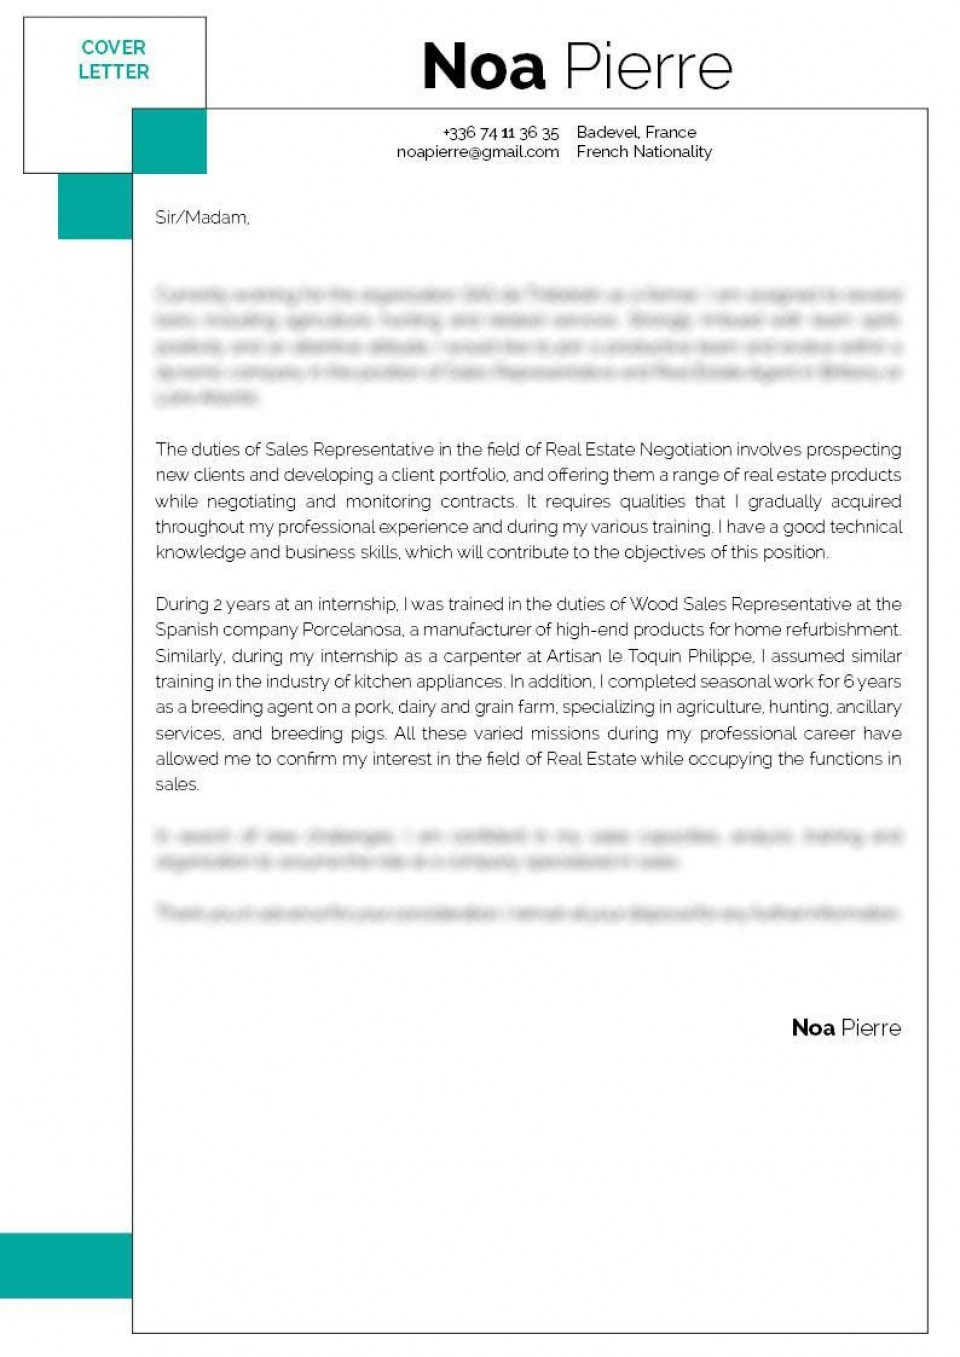 007 Singular Sale Cover Letter Template High Definition  Account Manager Word Rep960